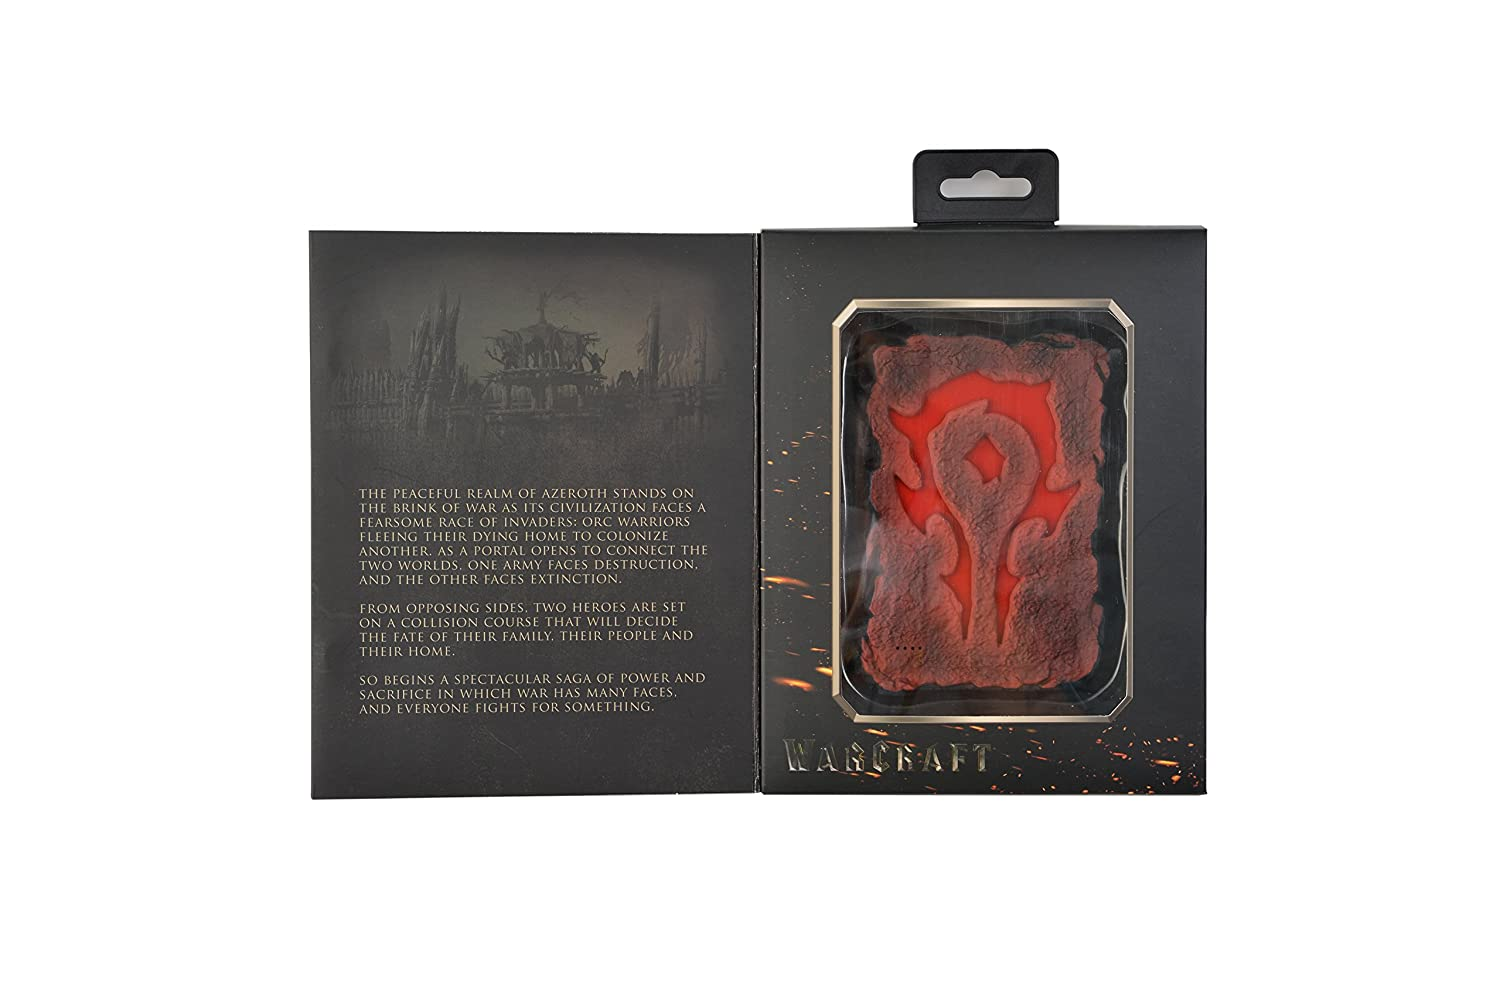 Swordfish Tech Warcraft Horde Symbol 6720mah External Power Bank